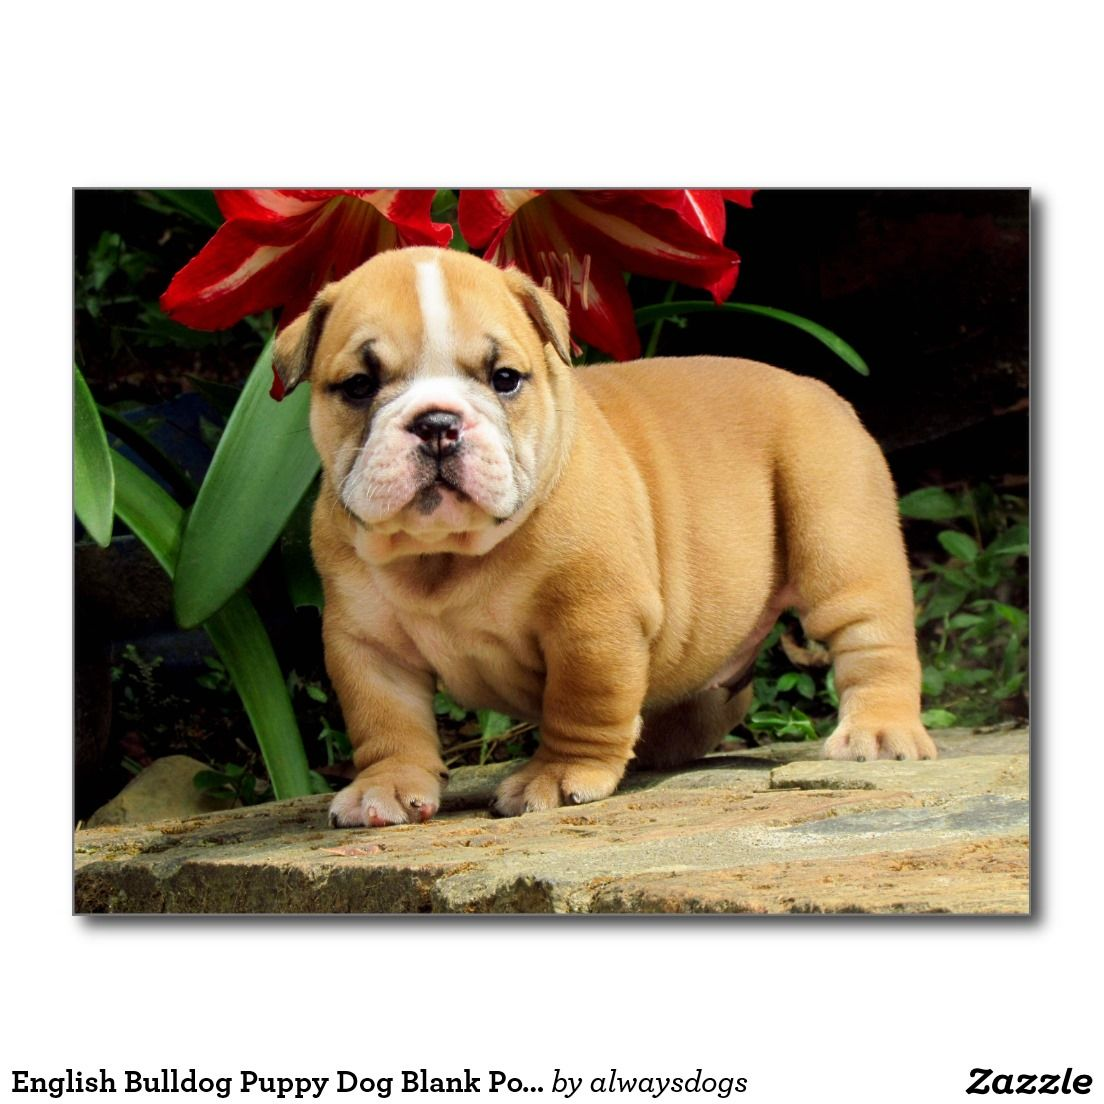 English Bulldog Puppy Dog Blank Postcard Zazzle Com English Bulldog Puppies Bulldog Puppies English Bulldog Puppy